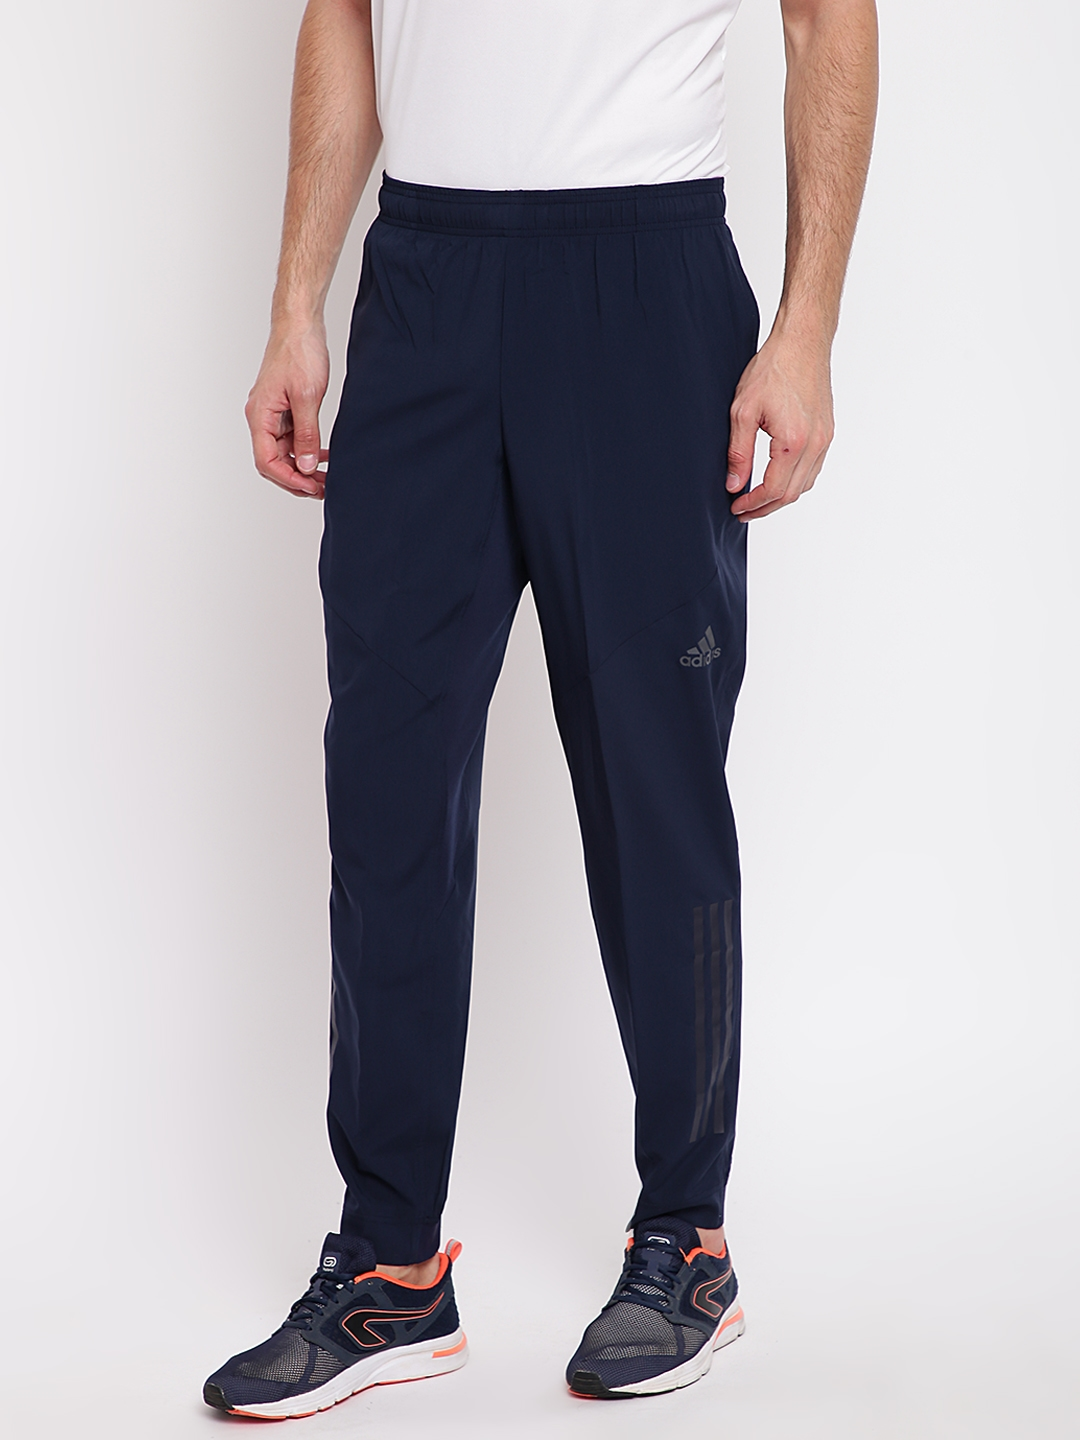 b2a5d0d51d53 Buy ADIDAS Men Navy Blue WO PA Climacool Joggers - Track Pants for ...